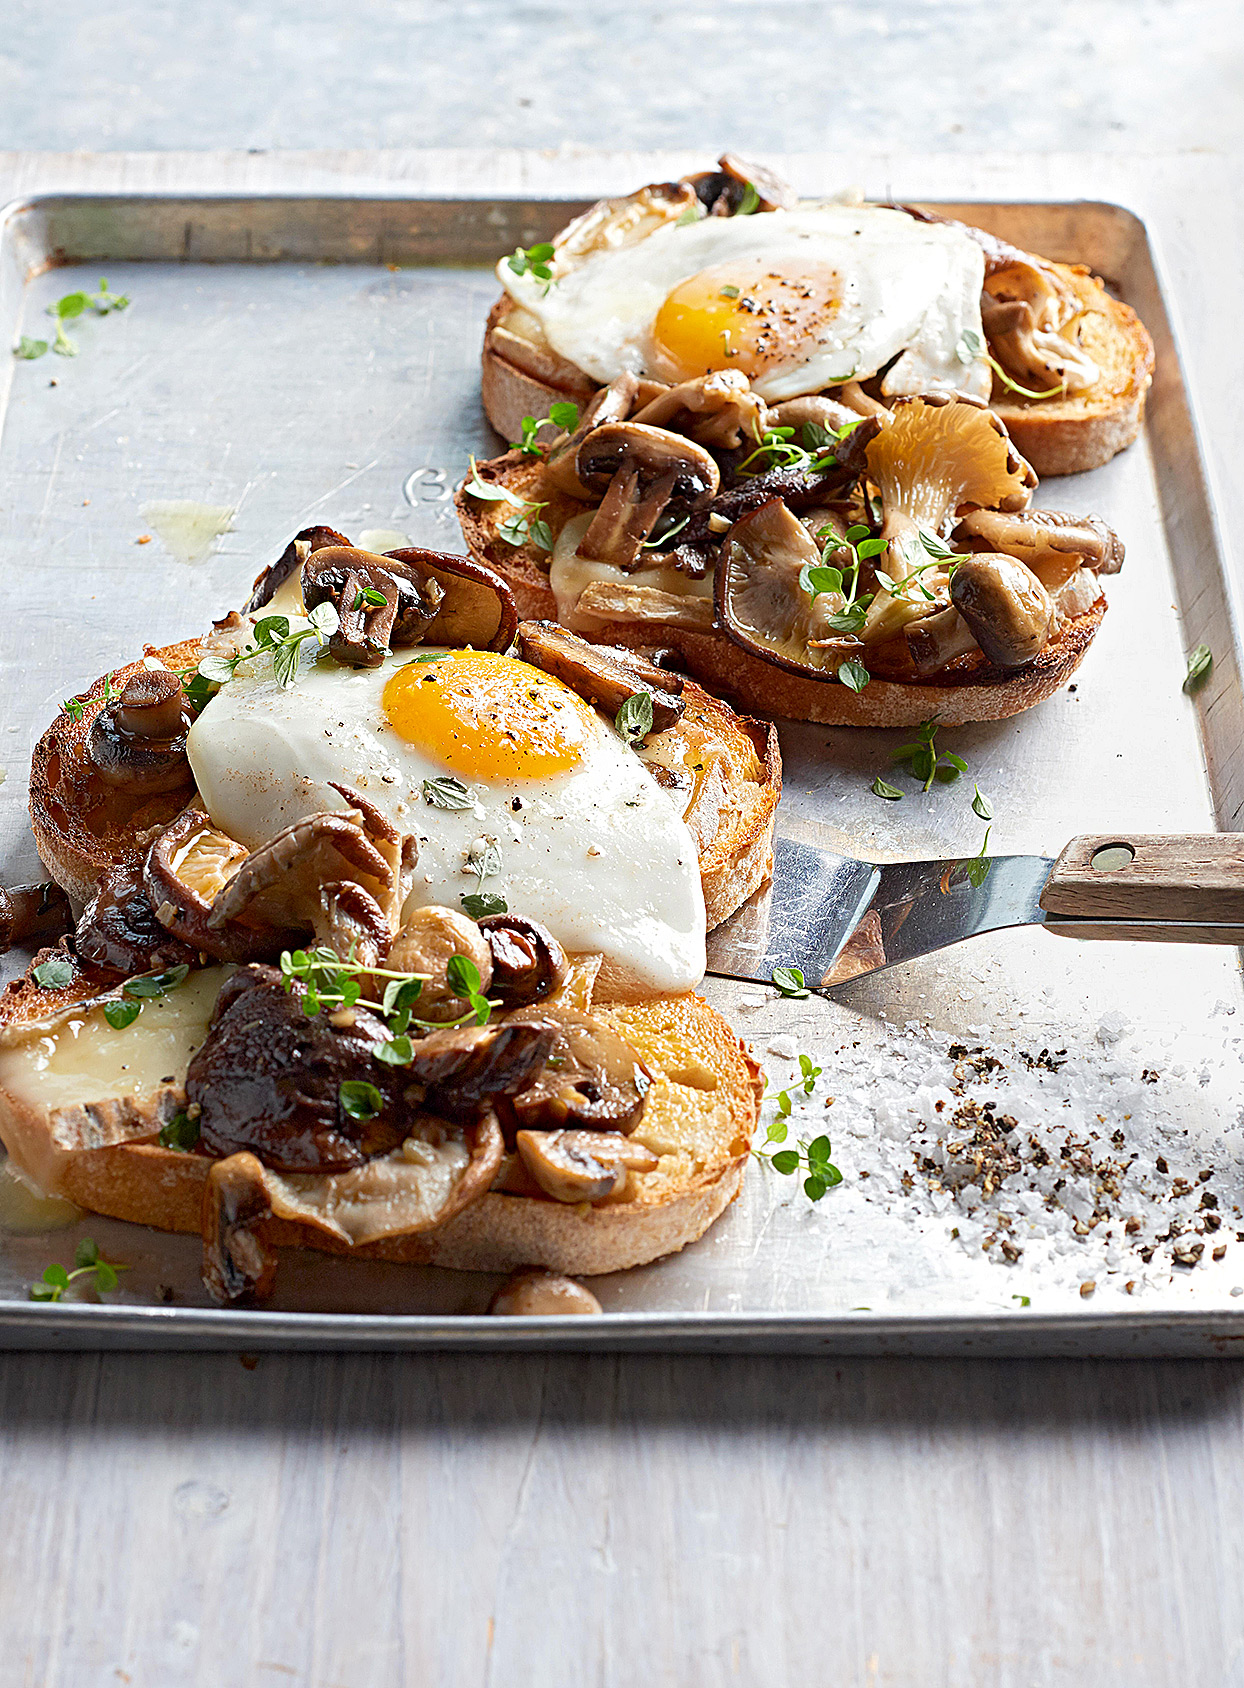 Mushroom and Cheese Sourdough Toasts